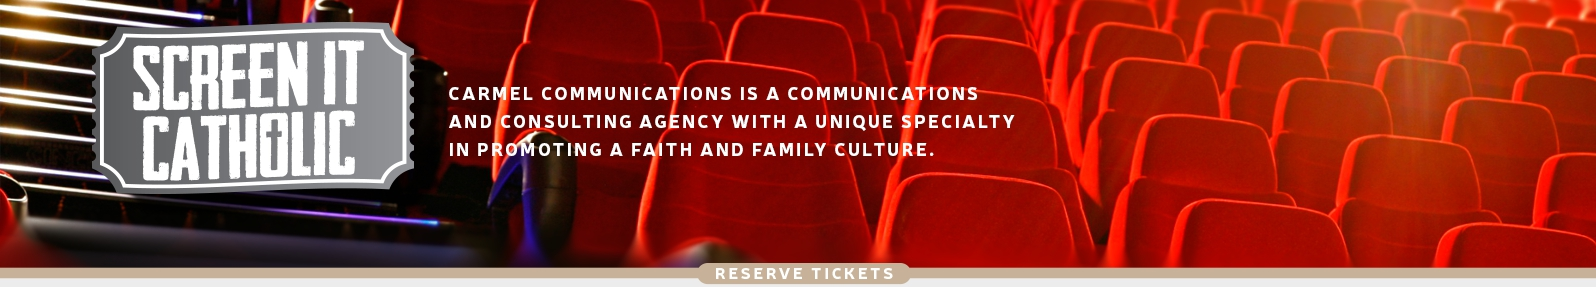 Screen It Catholic: Carmel Communications is a communications and consulting agency with a unique specialty in promoting a faith and family culture. RESERVE TICKETS: